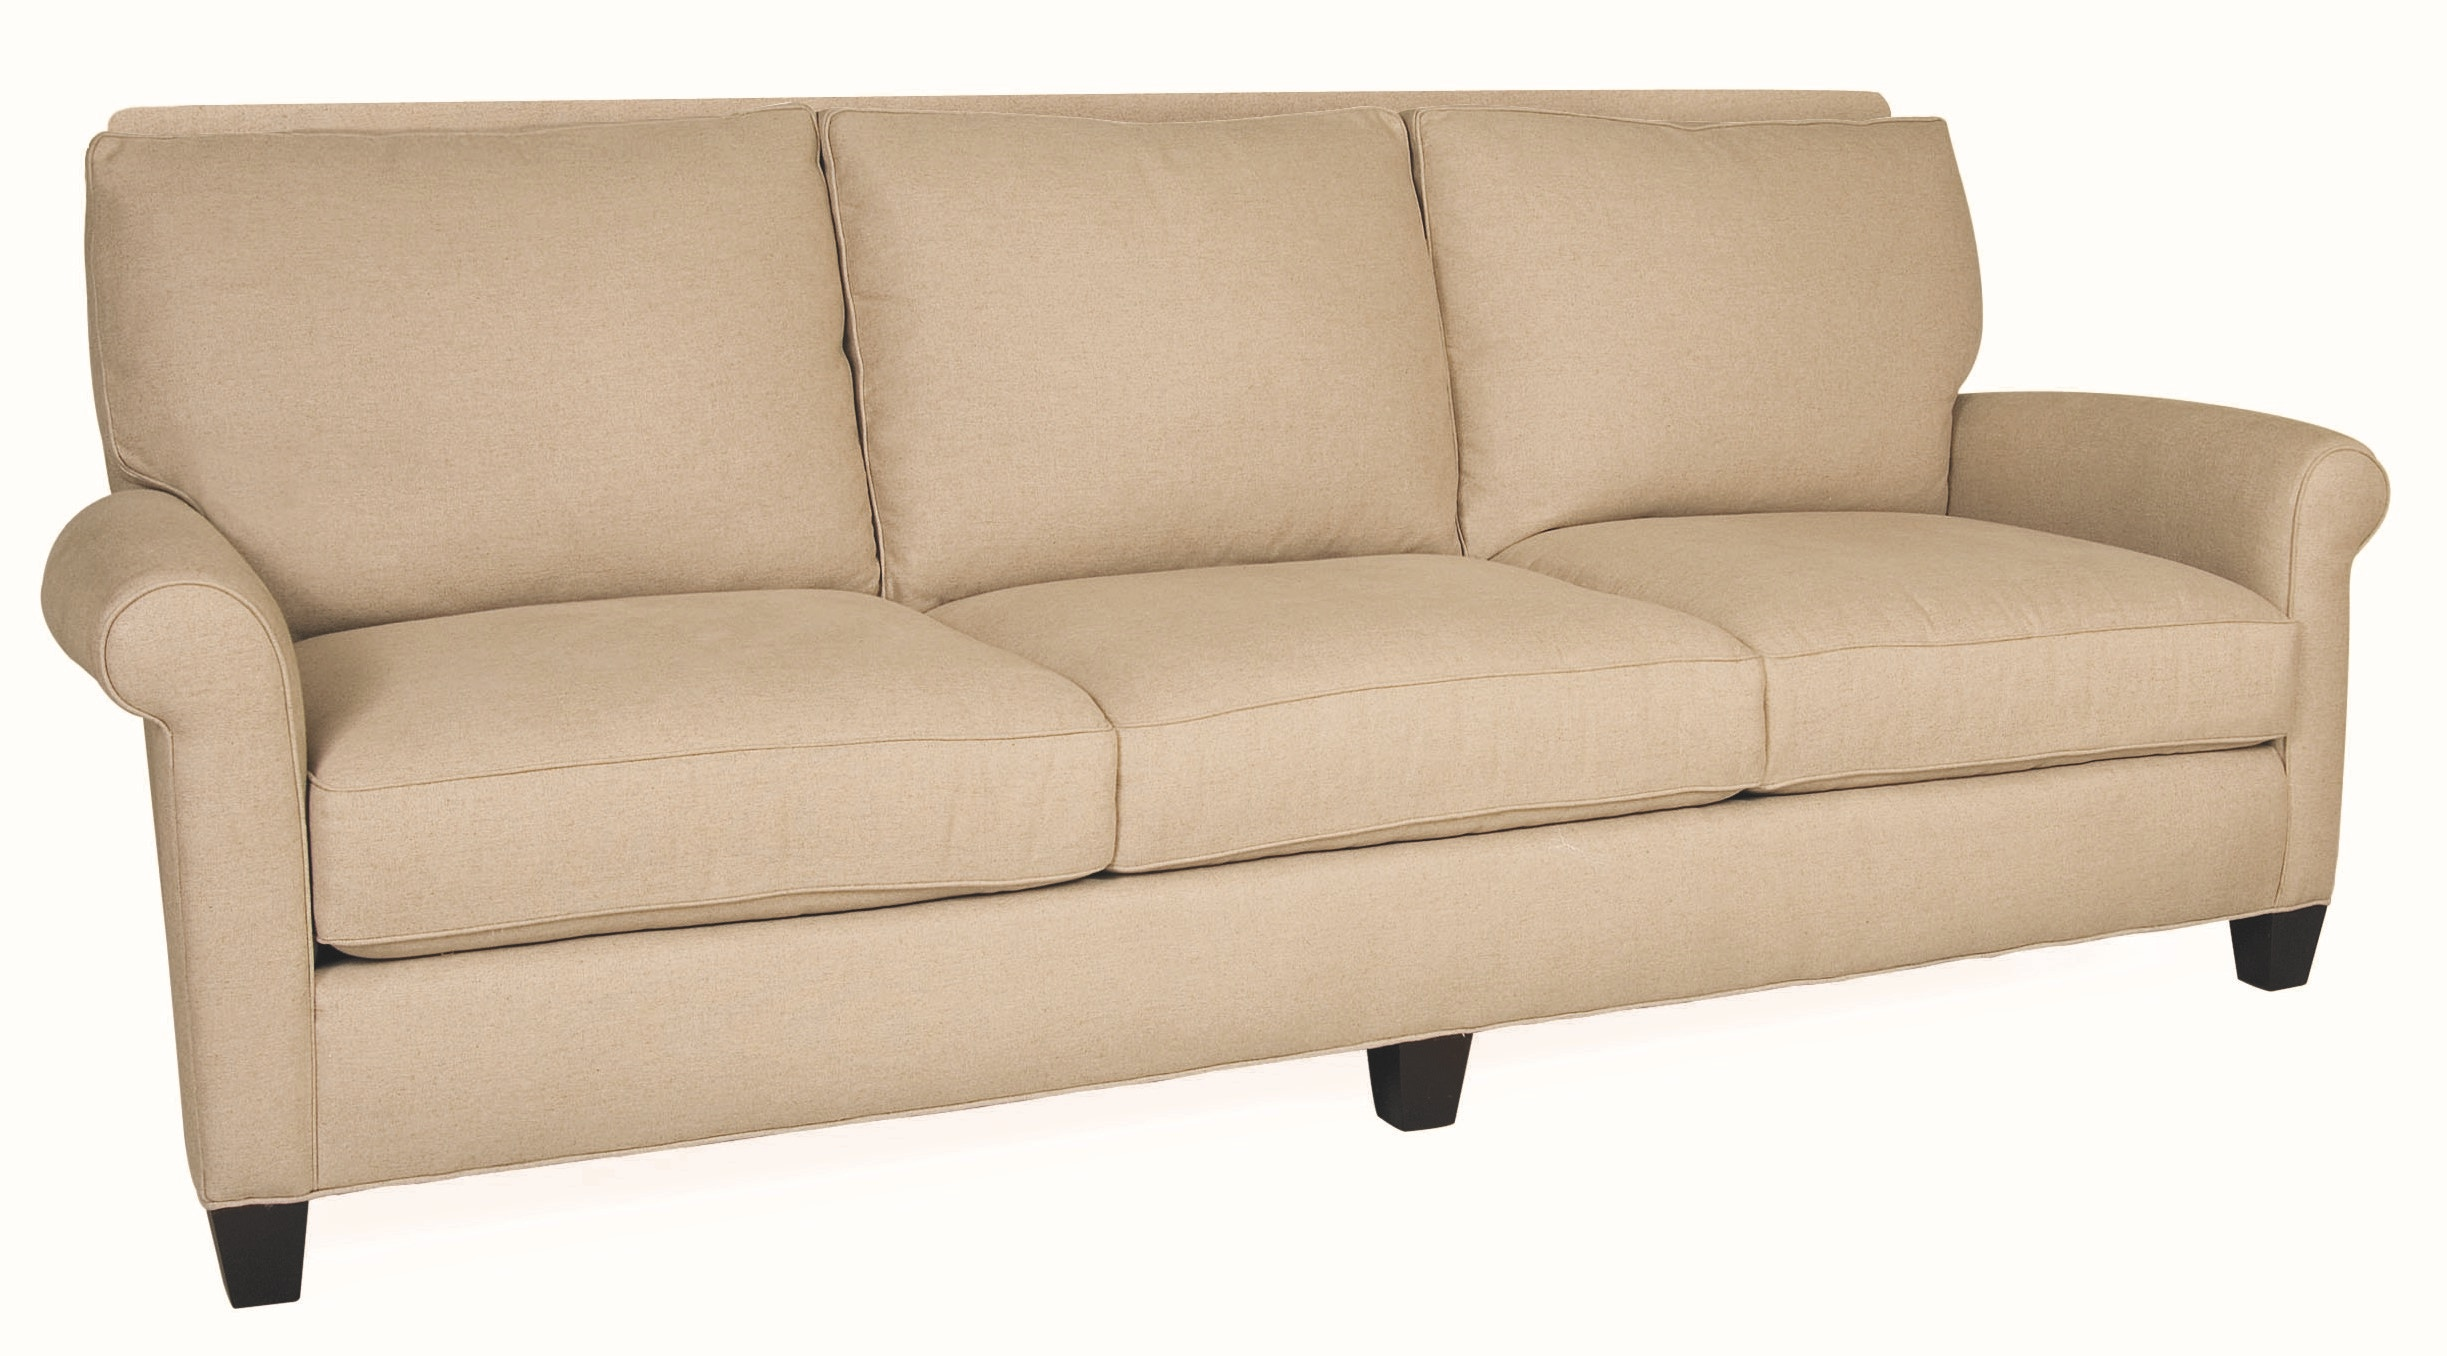 Charmant Lee Industries Sofa 3223 03